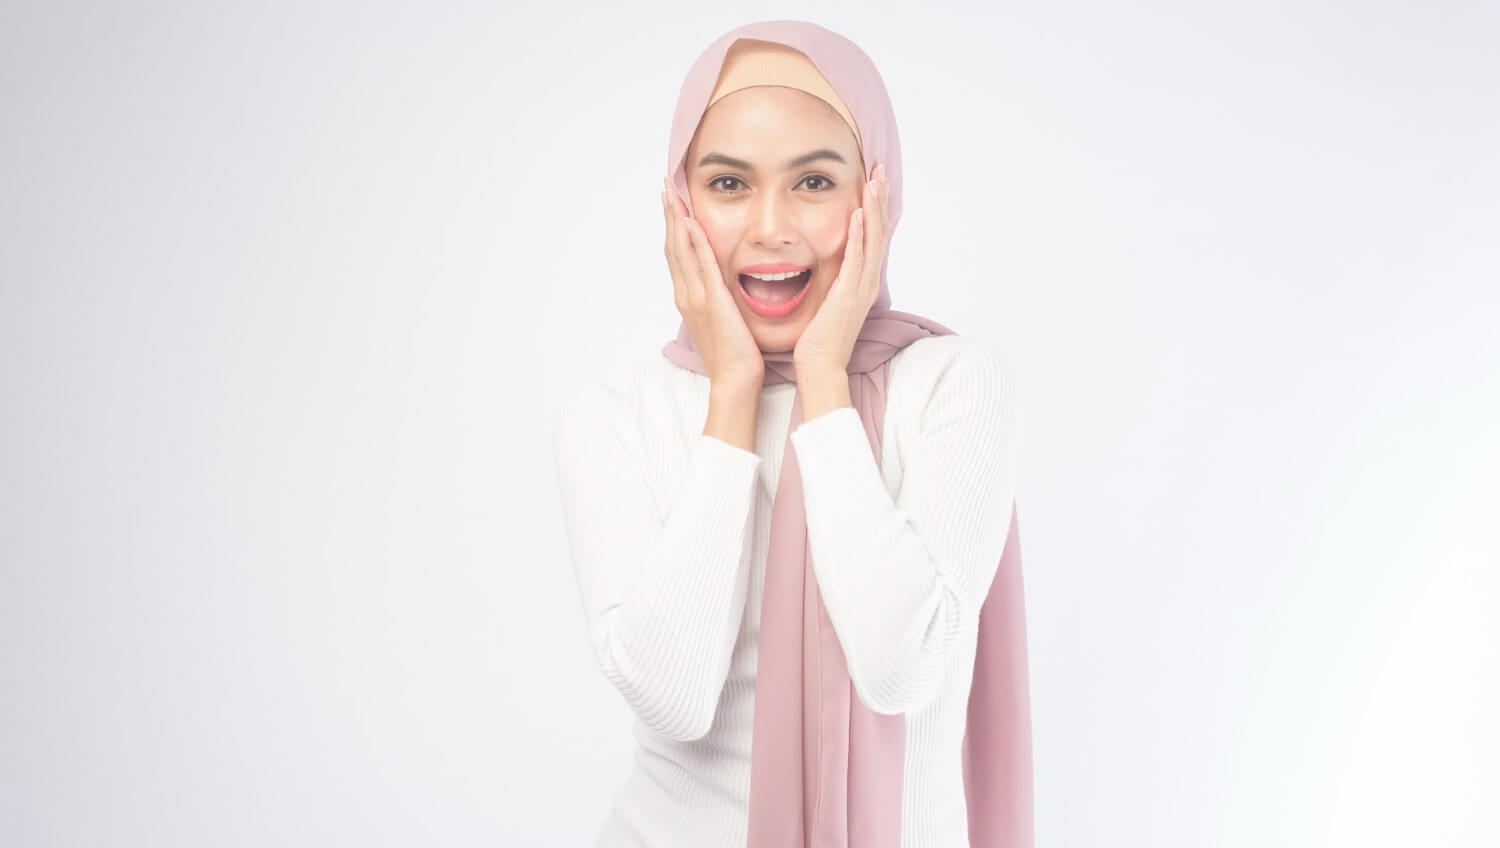 Your ultimate guide to the perfect Eid makeup<div><span style='color:#a0a0a0;font-size:16px;text-transform:none;line-height:1.1'>From the no-makeup look to shimmers and glitters, it's all in here!</span></div>